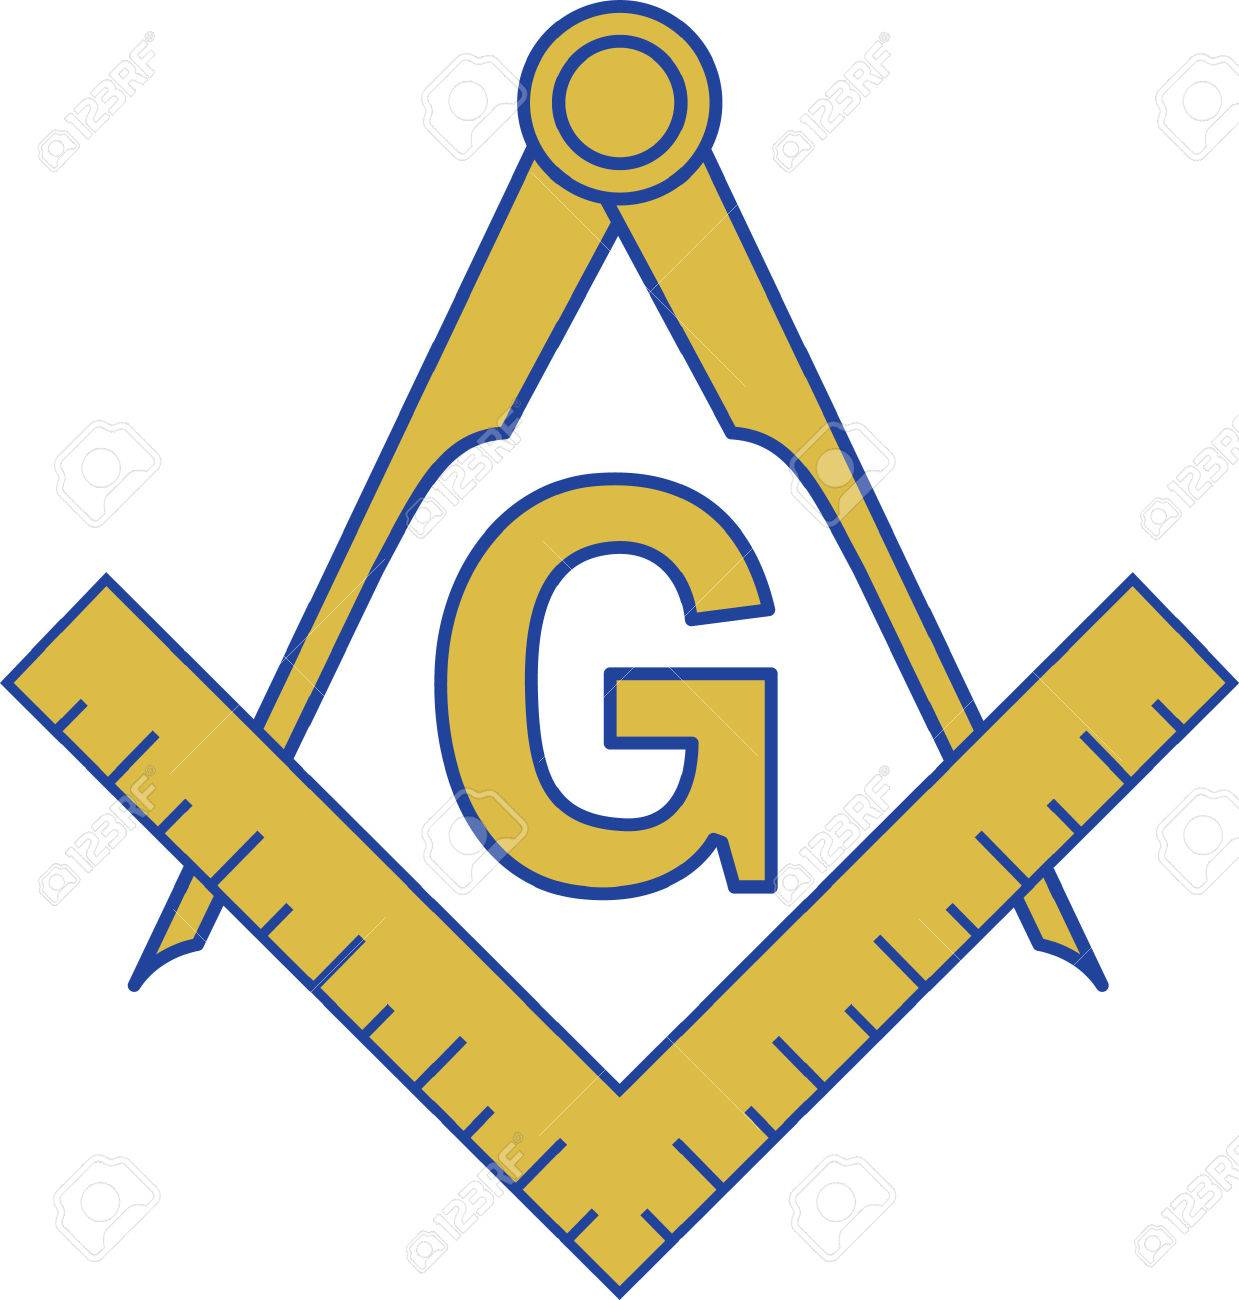 The Symbol Represents Freemasonry It Stands For Faith Hope And